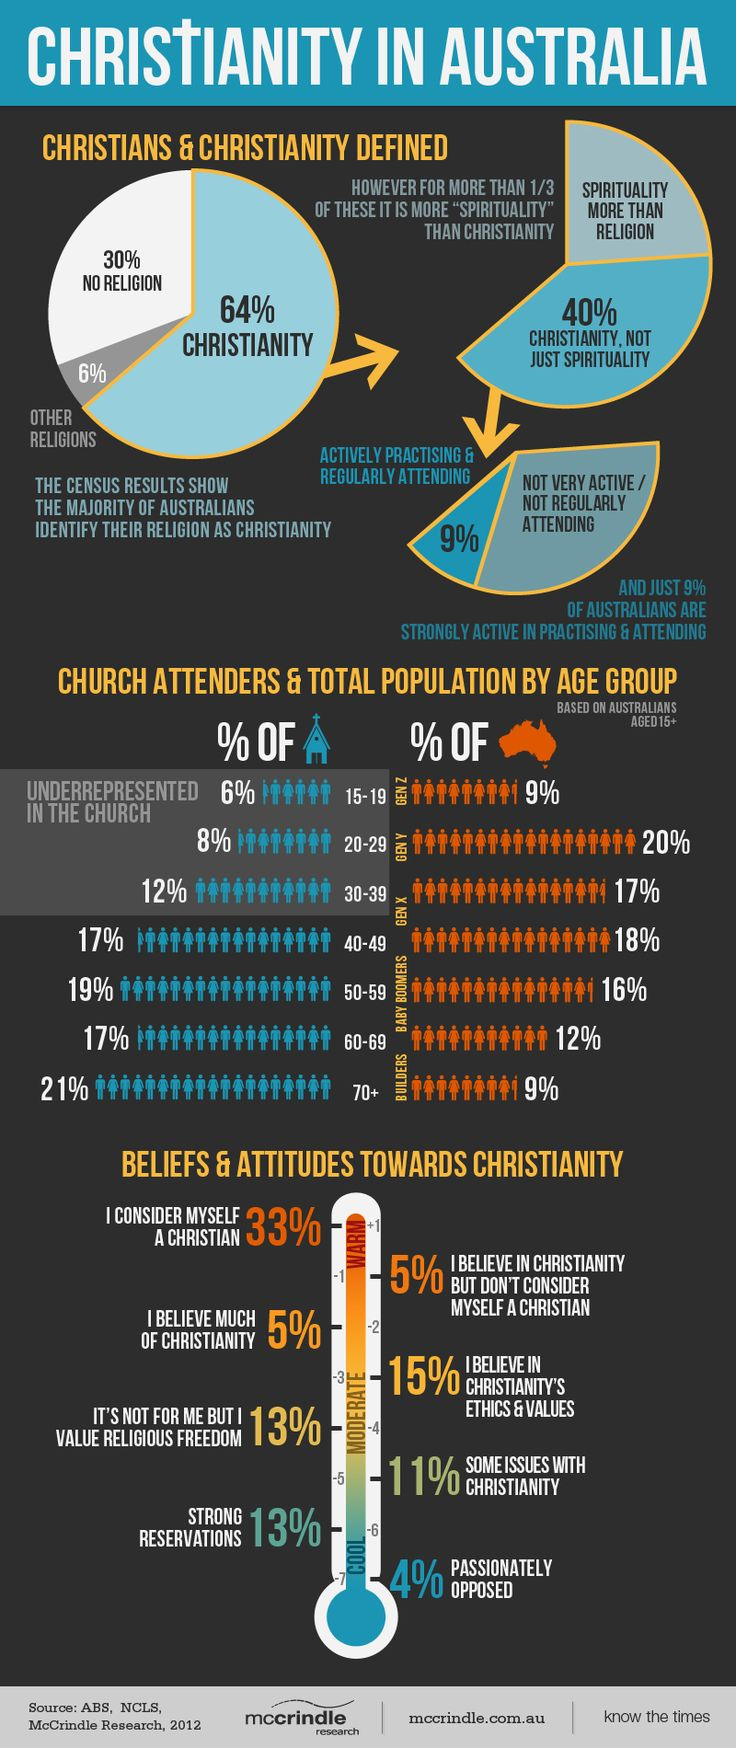 sample invitation letter for visitor visto australia%0A     tick the  u    Christian u     box in the Census  only are very activepractising  Christians  Here u    s an infographic we made on Christianity in Australia  today